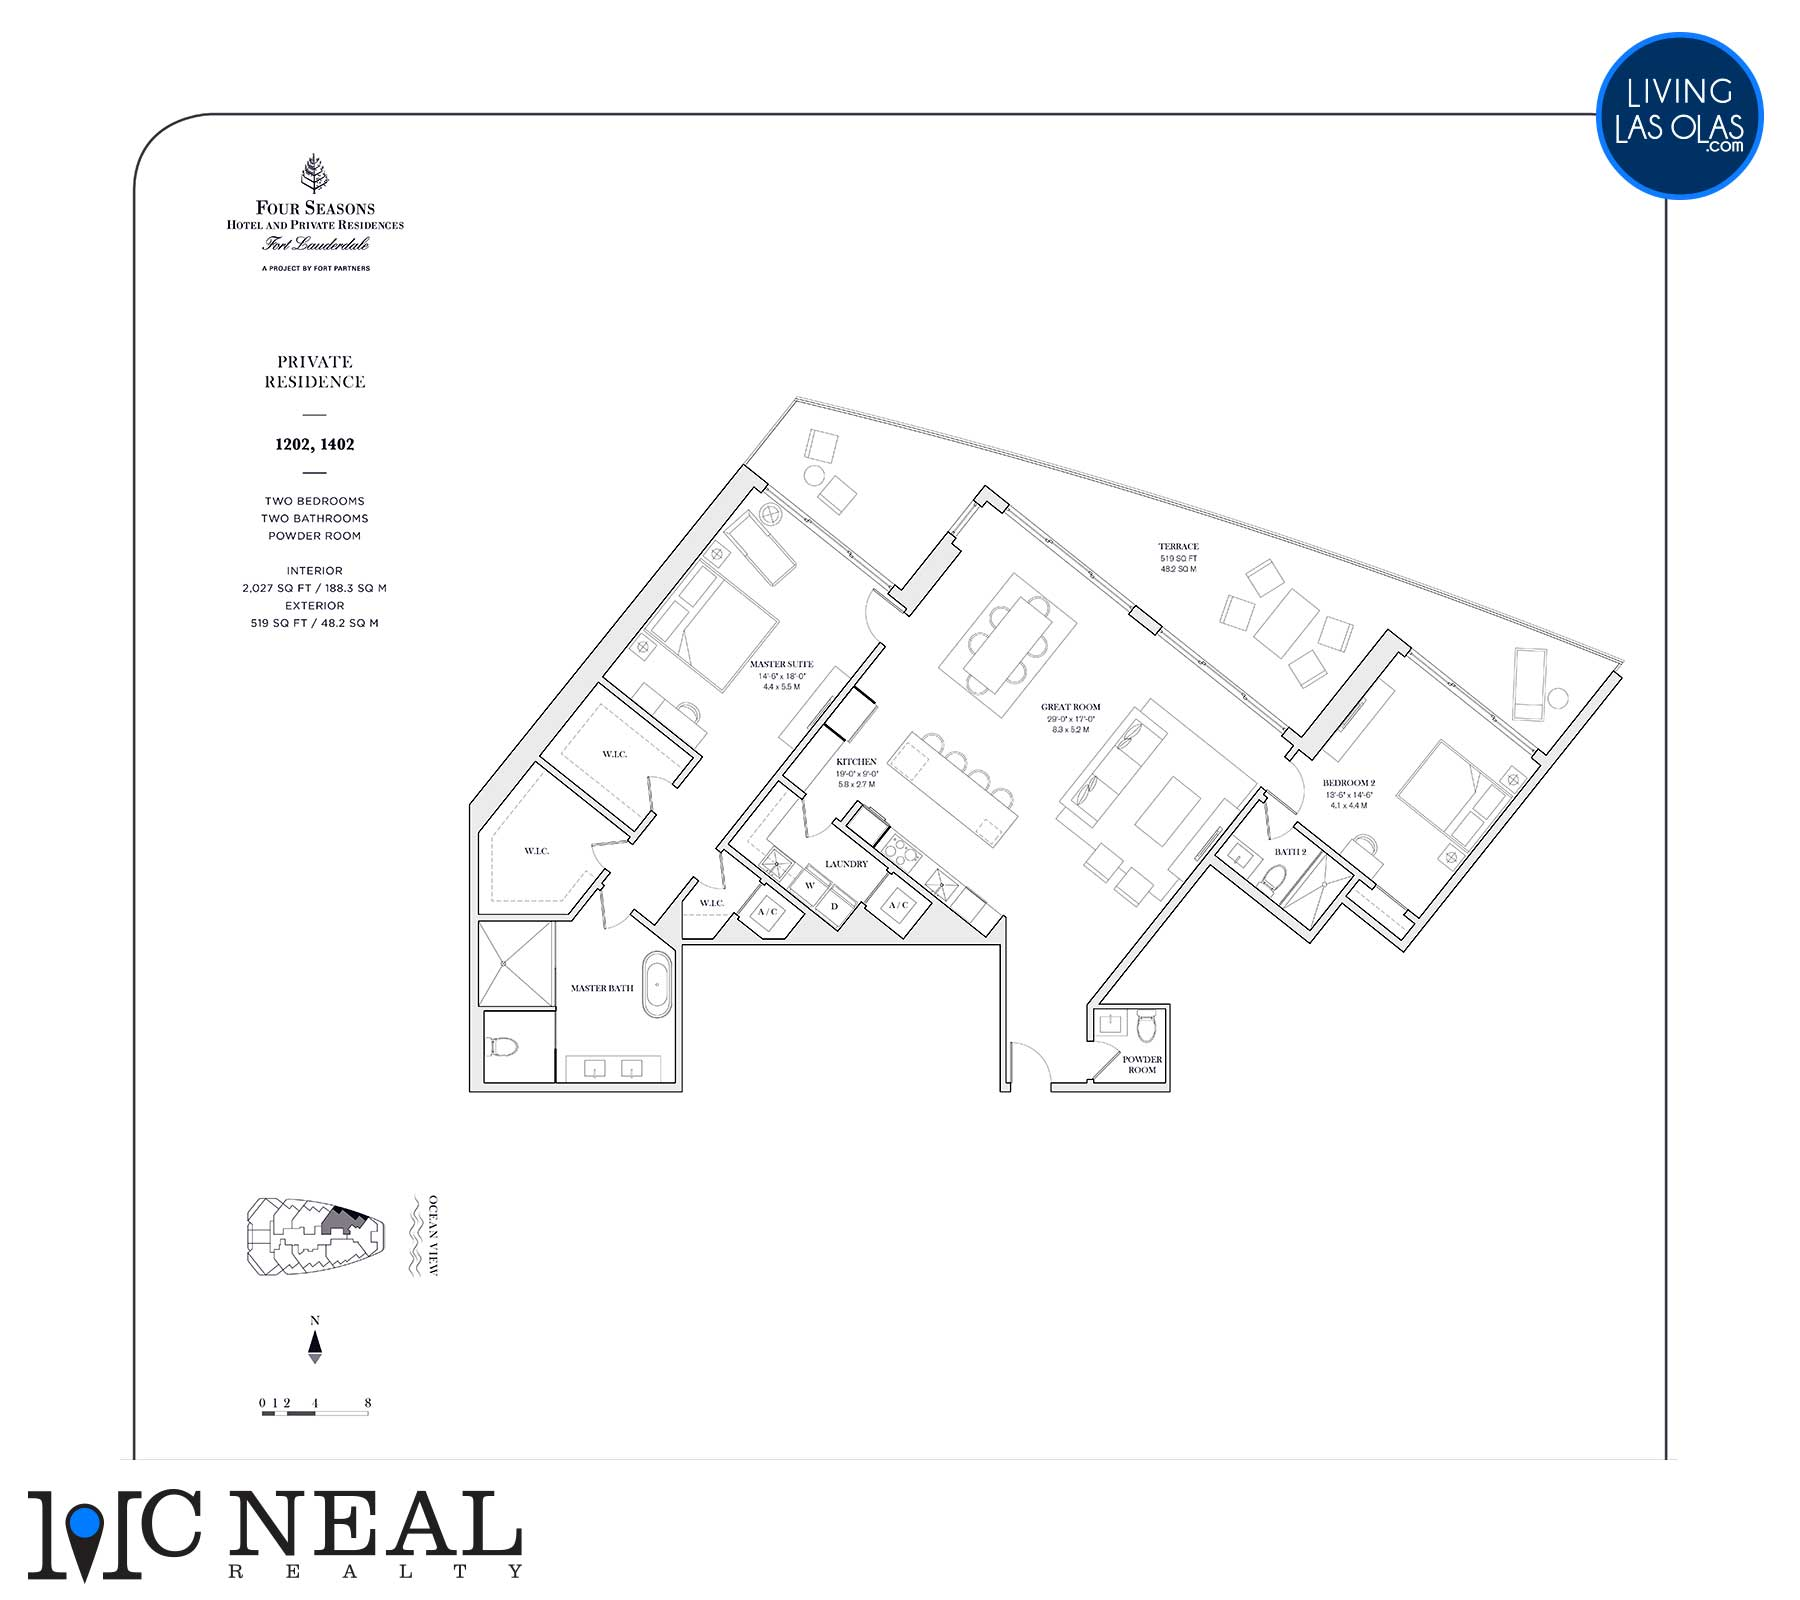 Four Seasons Private Residences Floor Plan 1202-1402